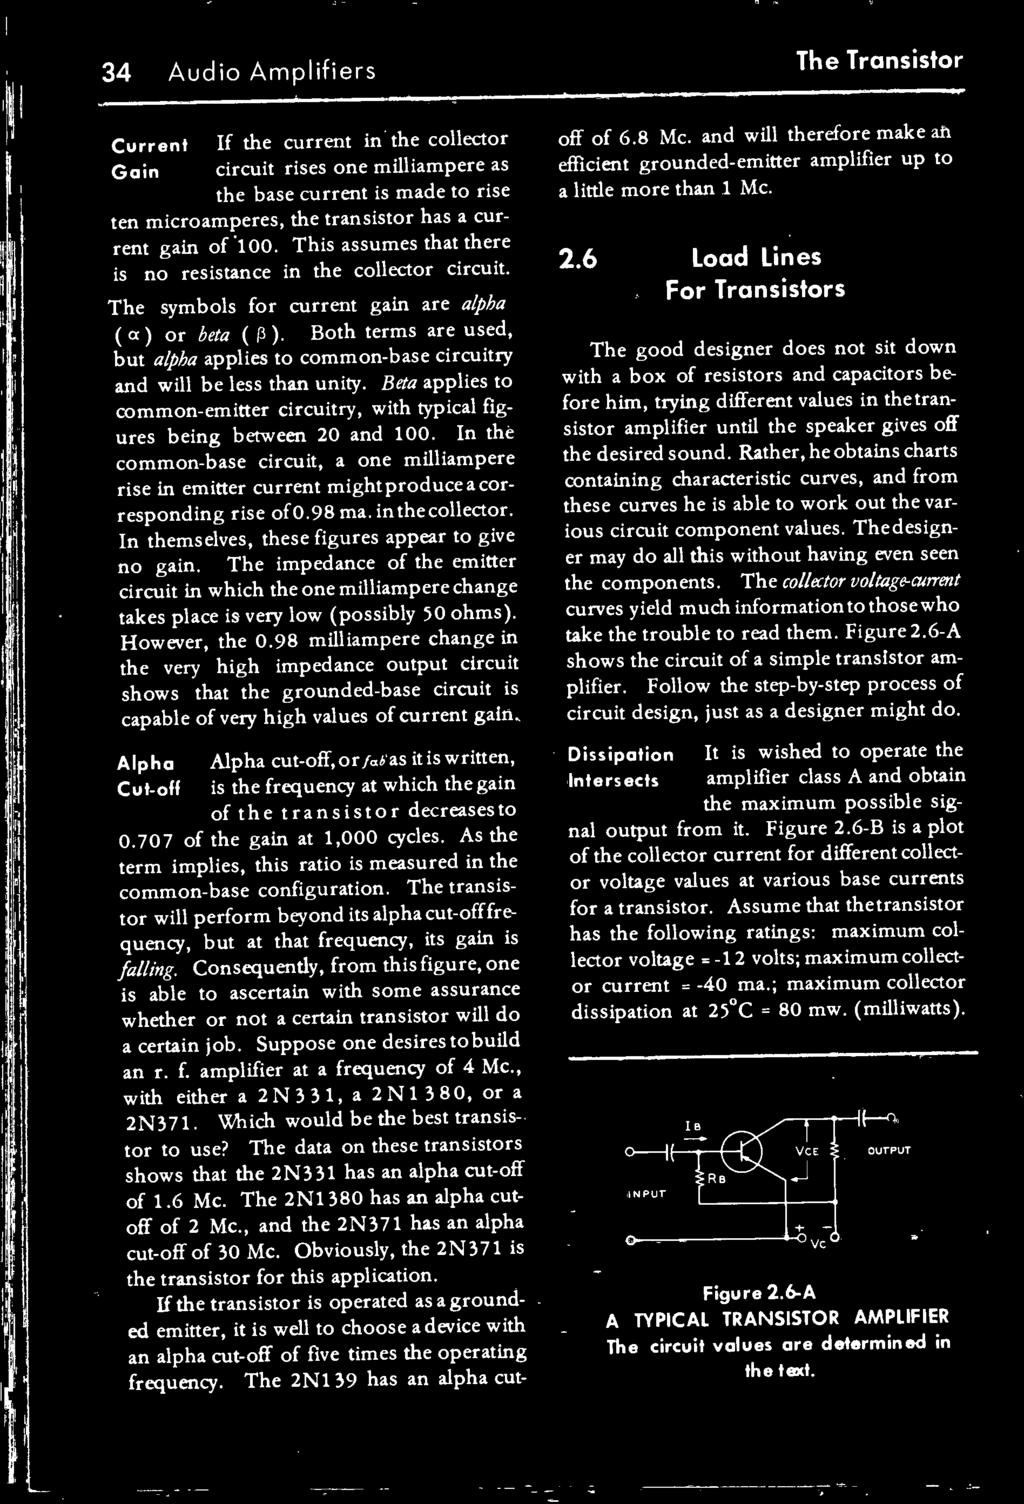 The Transistor Radio Handbook Theory Circuitry Equipment Pdf Dc Converter Further Circuits Gt 15w Inverter Circuit 12vdc To 120vac Both Terms Are Used But Alpha Applies Common Base And Will Be